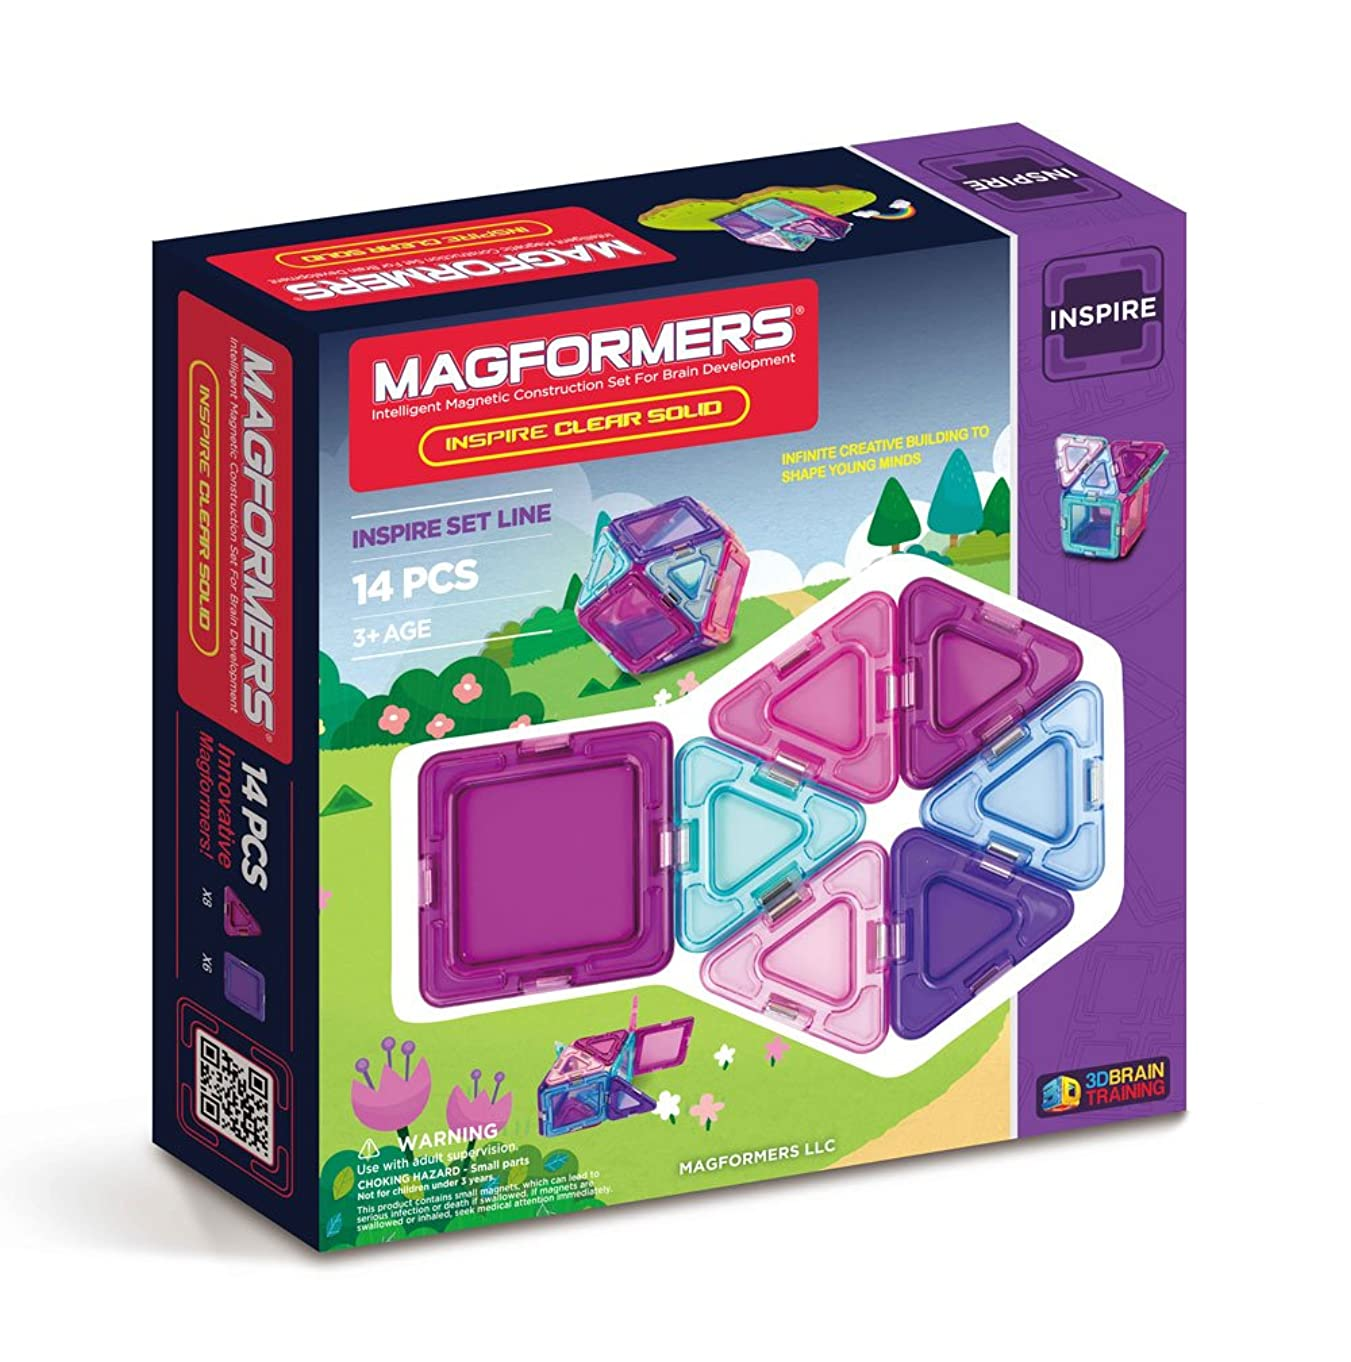 Magformers Inspire Solid Clear Set (14-pieces) Magnetic    Building      Blocks, Educational  Magnetic    Tiles Kit , Magnetic    Construction  STEM Set